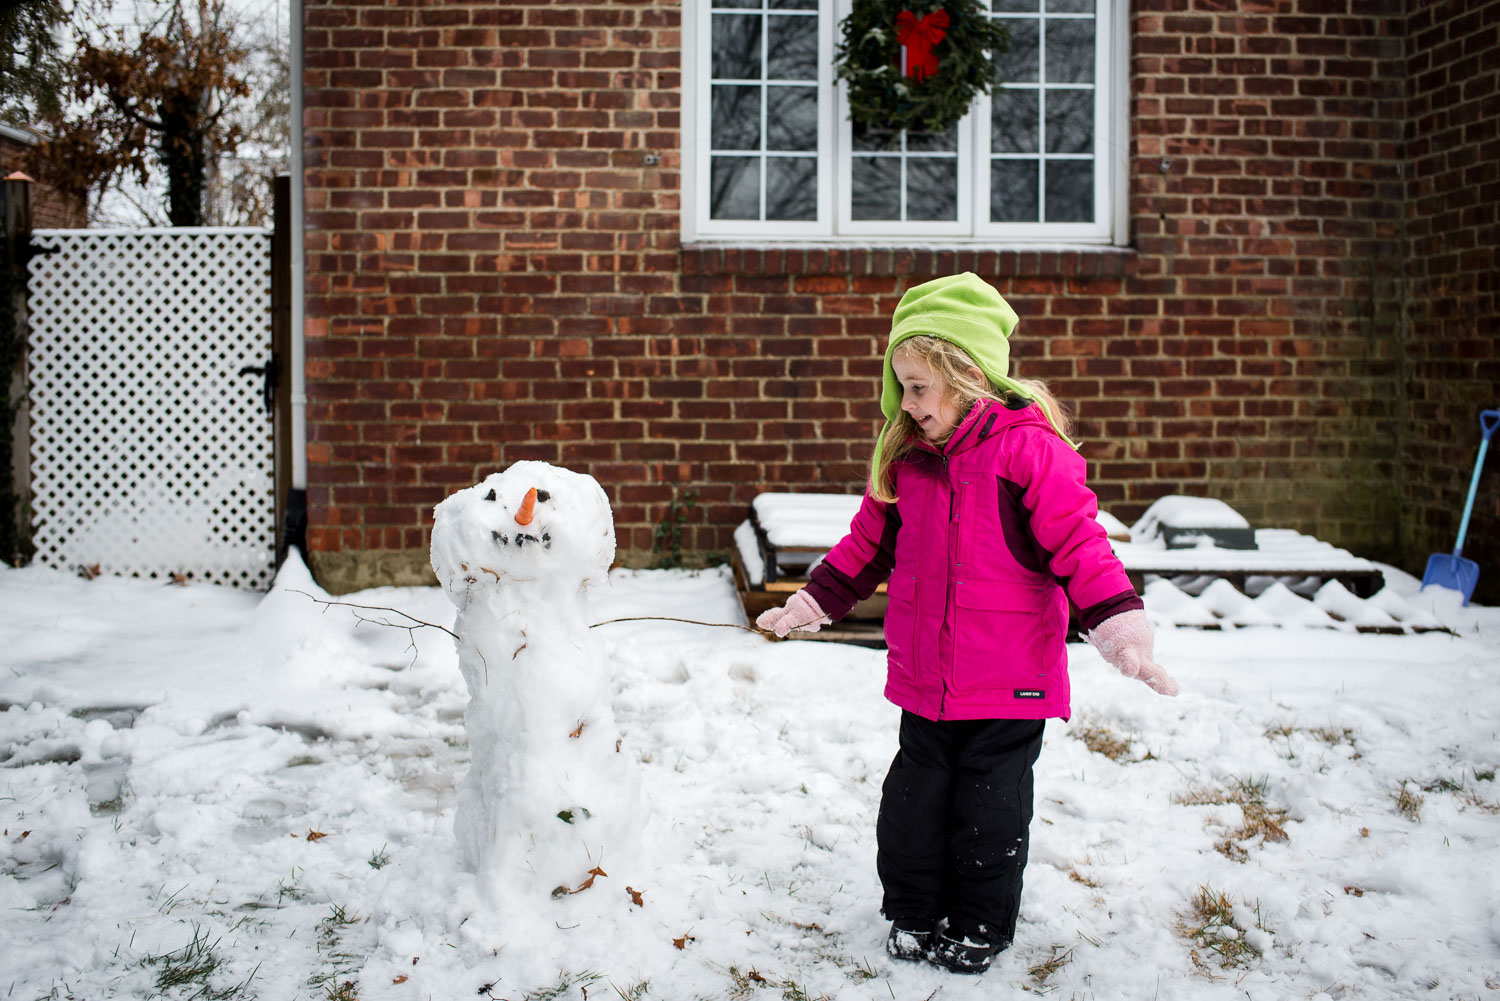 A little girl building a snowman.